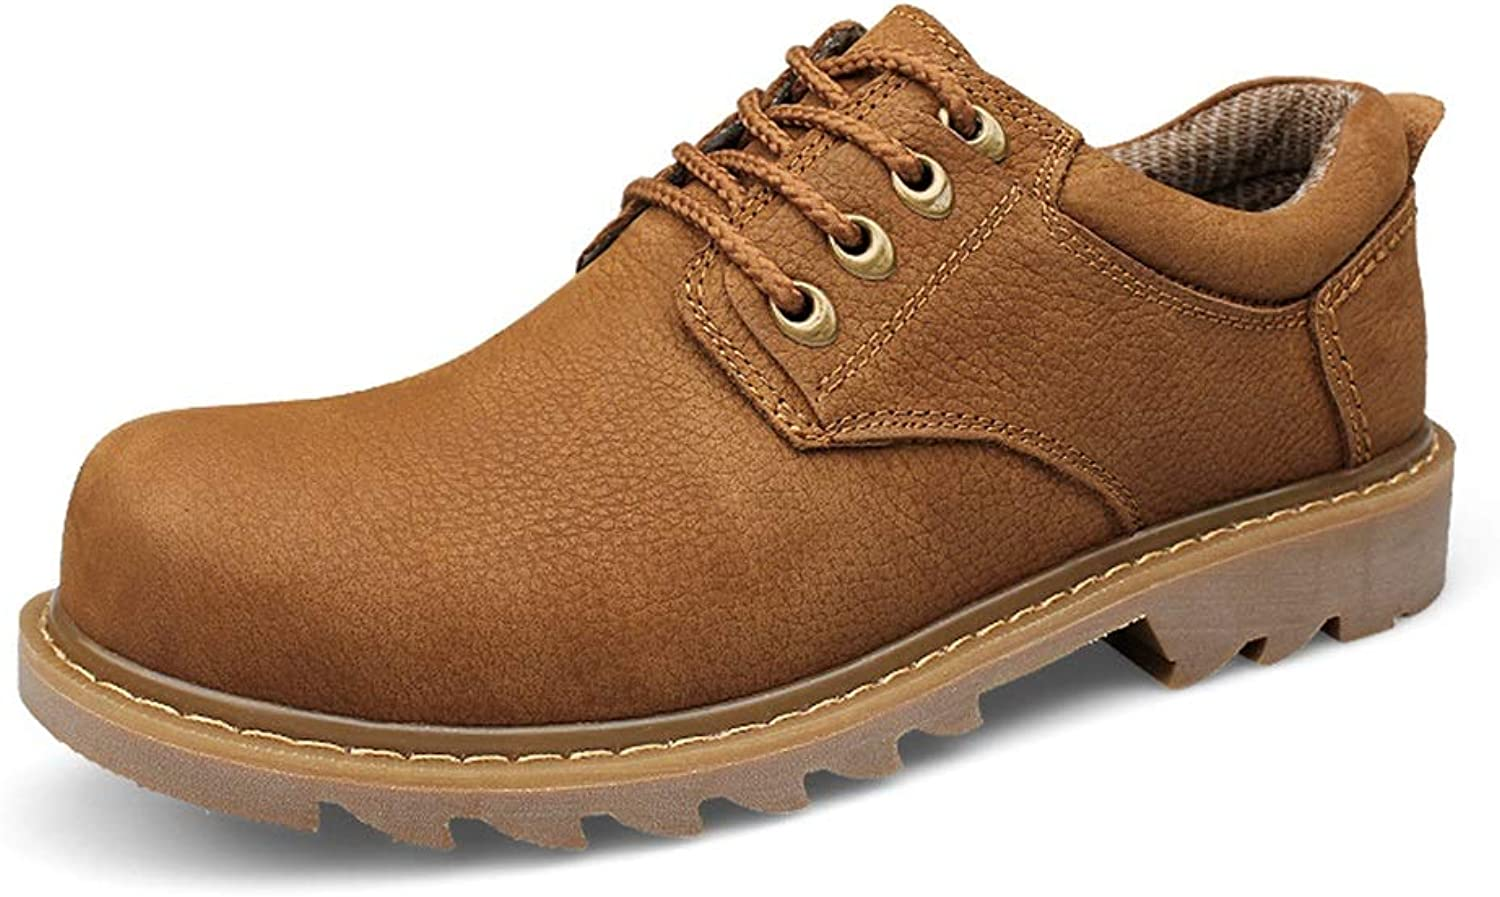 JIALUN-shoes Outdoor Casual shoes Men's Fashion Boots Classic Workwear Trend Low Top Comfortable Big Size Formal shoes